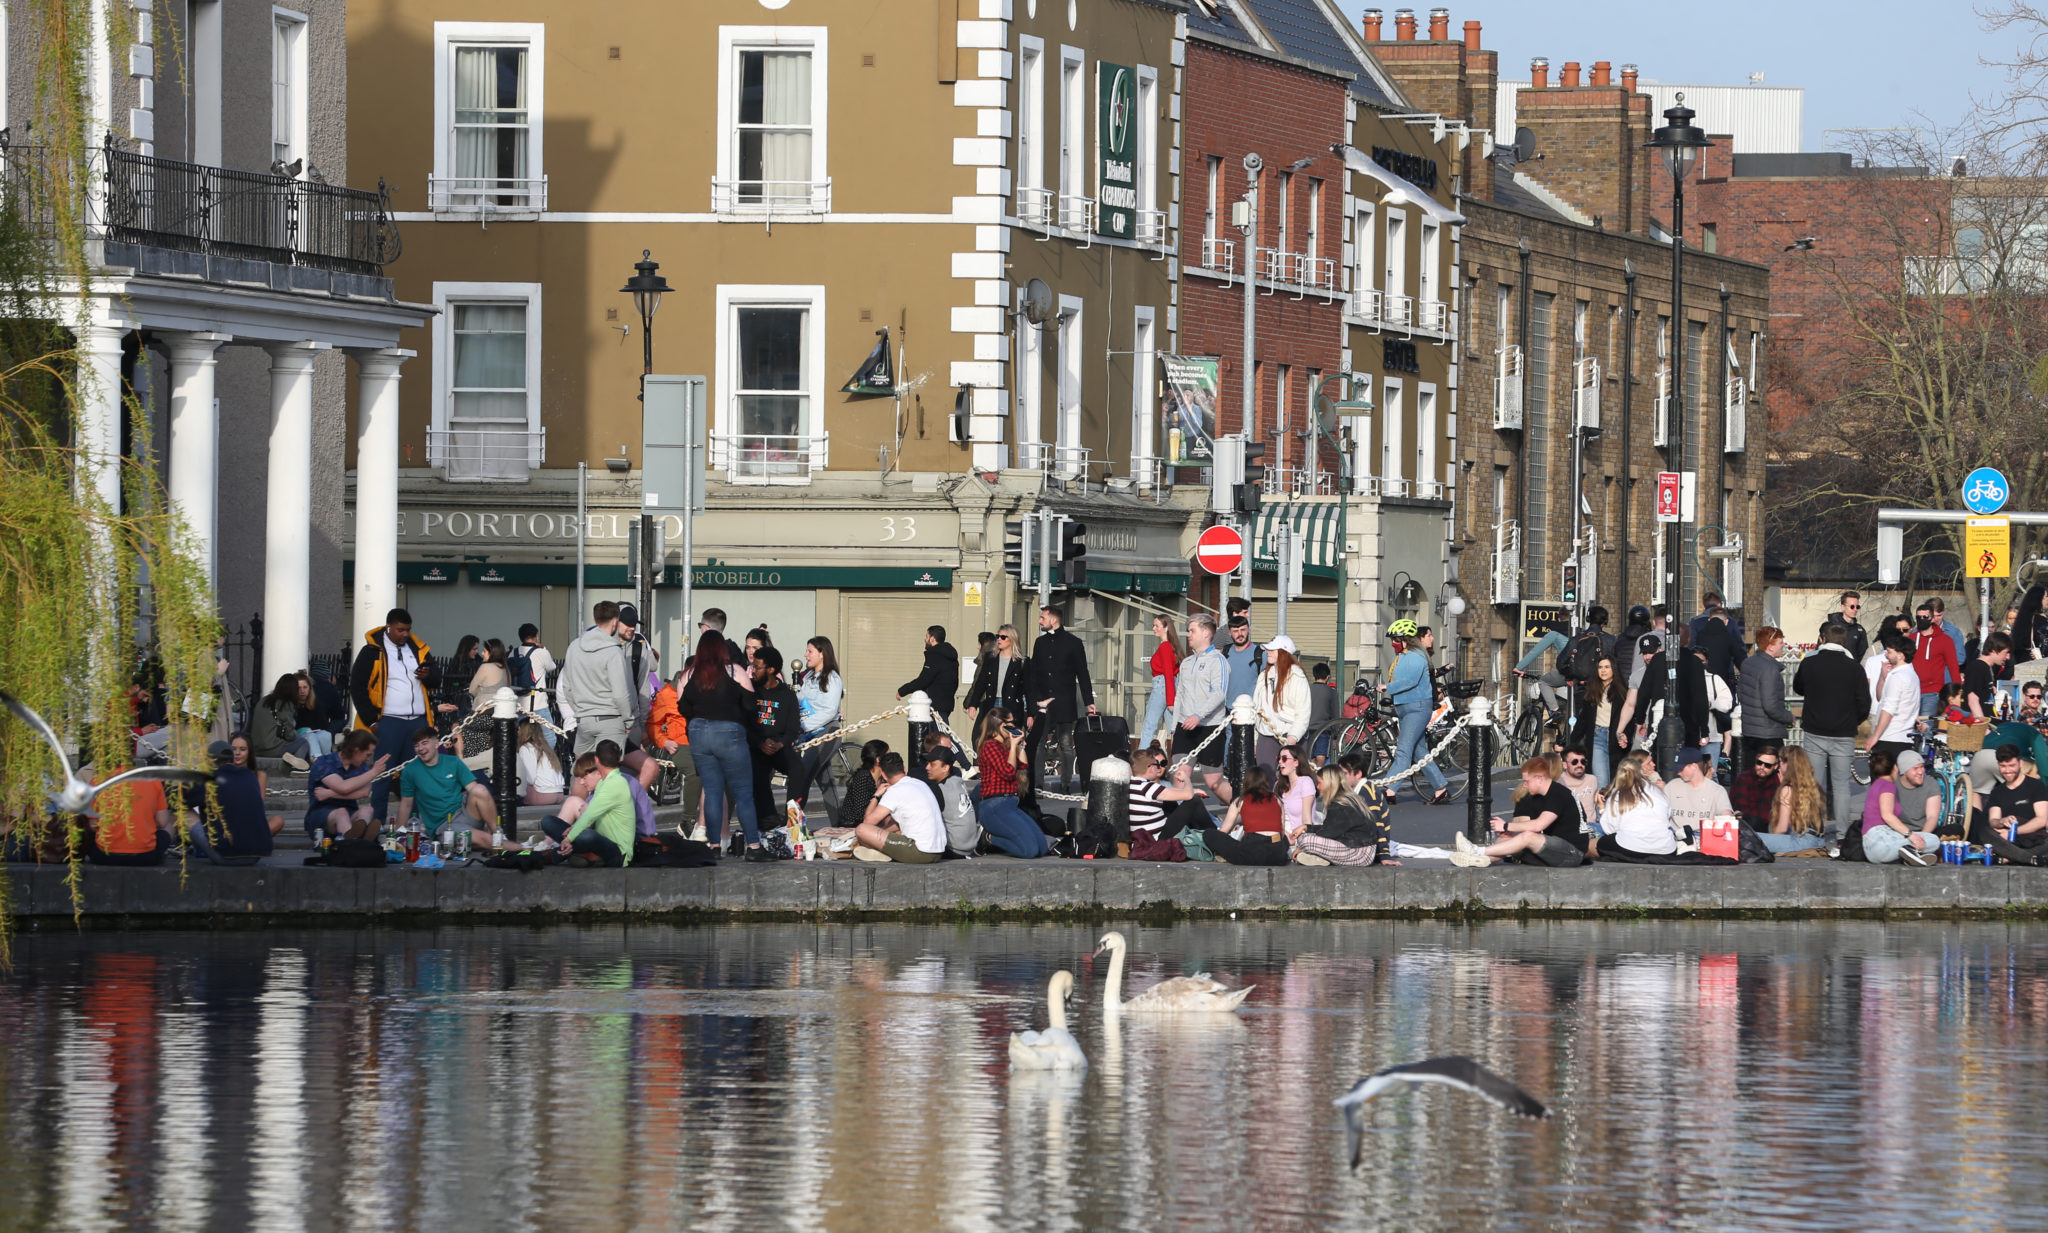 Large crowds of people in the sunny weather at Dublin's Portobello on Tuesday